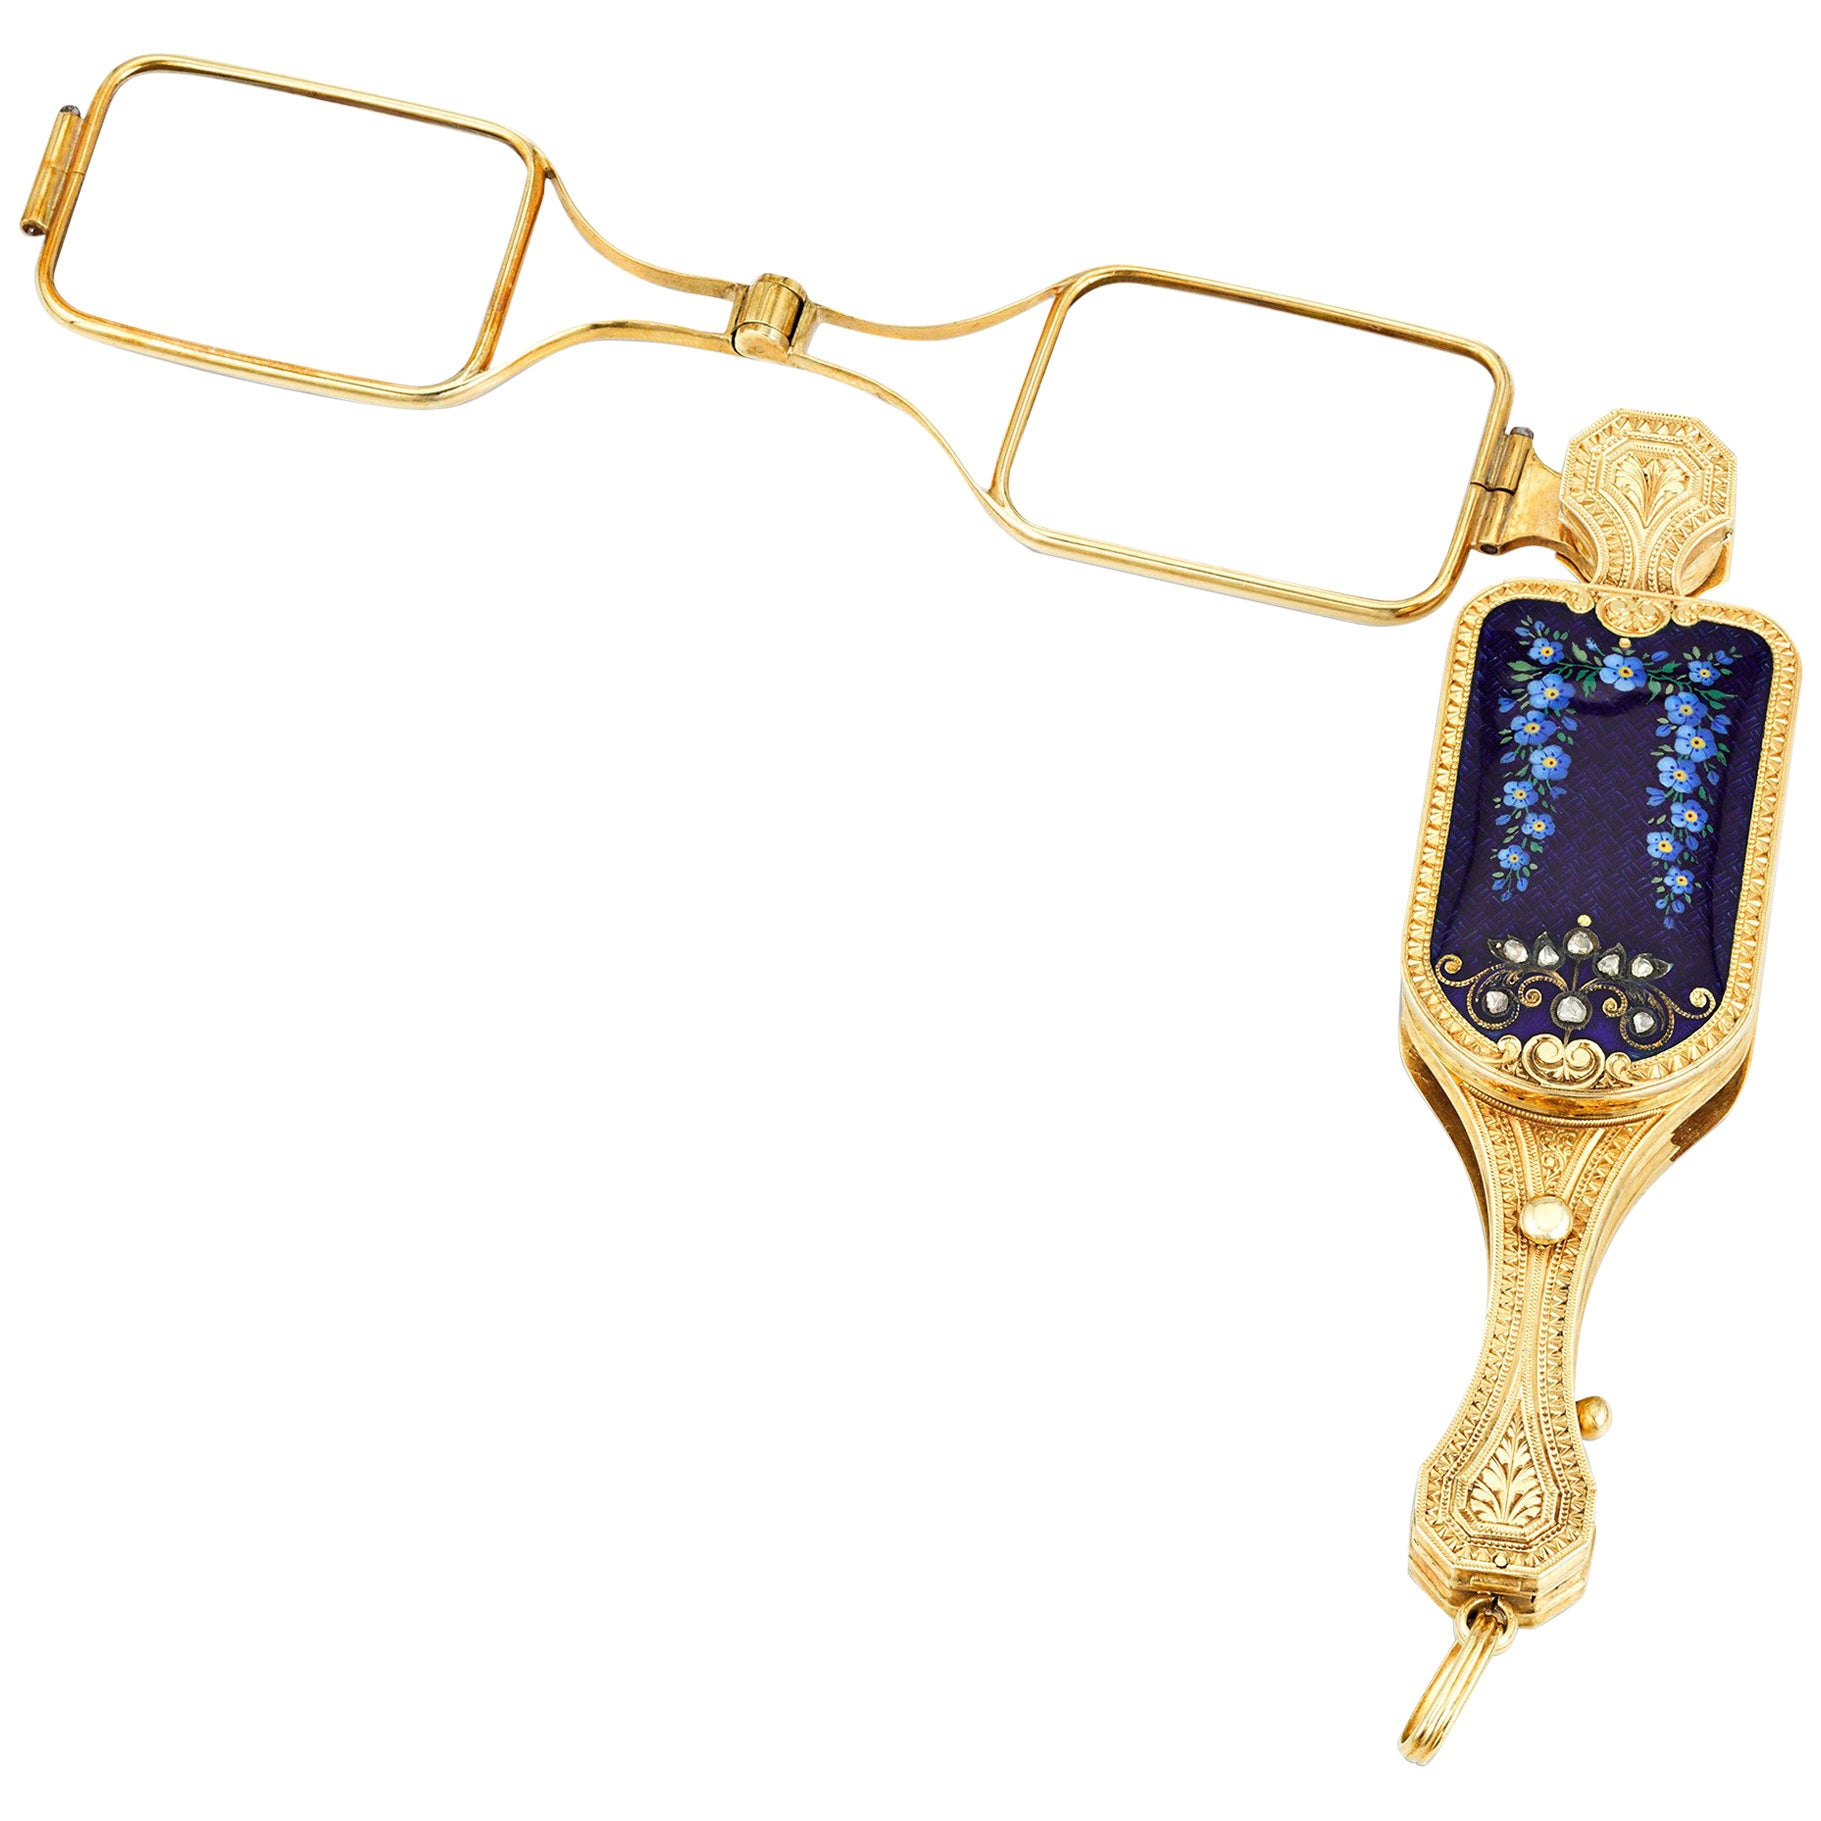 3b0df6e0eb05 Gold and Enamel Lorgnette with Concealed Watch at 1stdibs